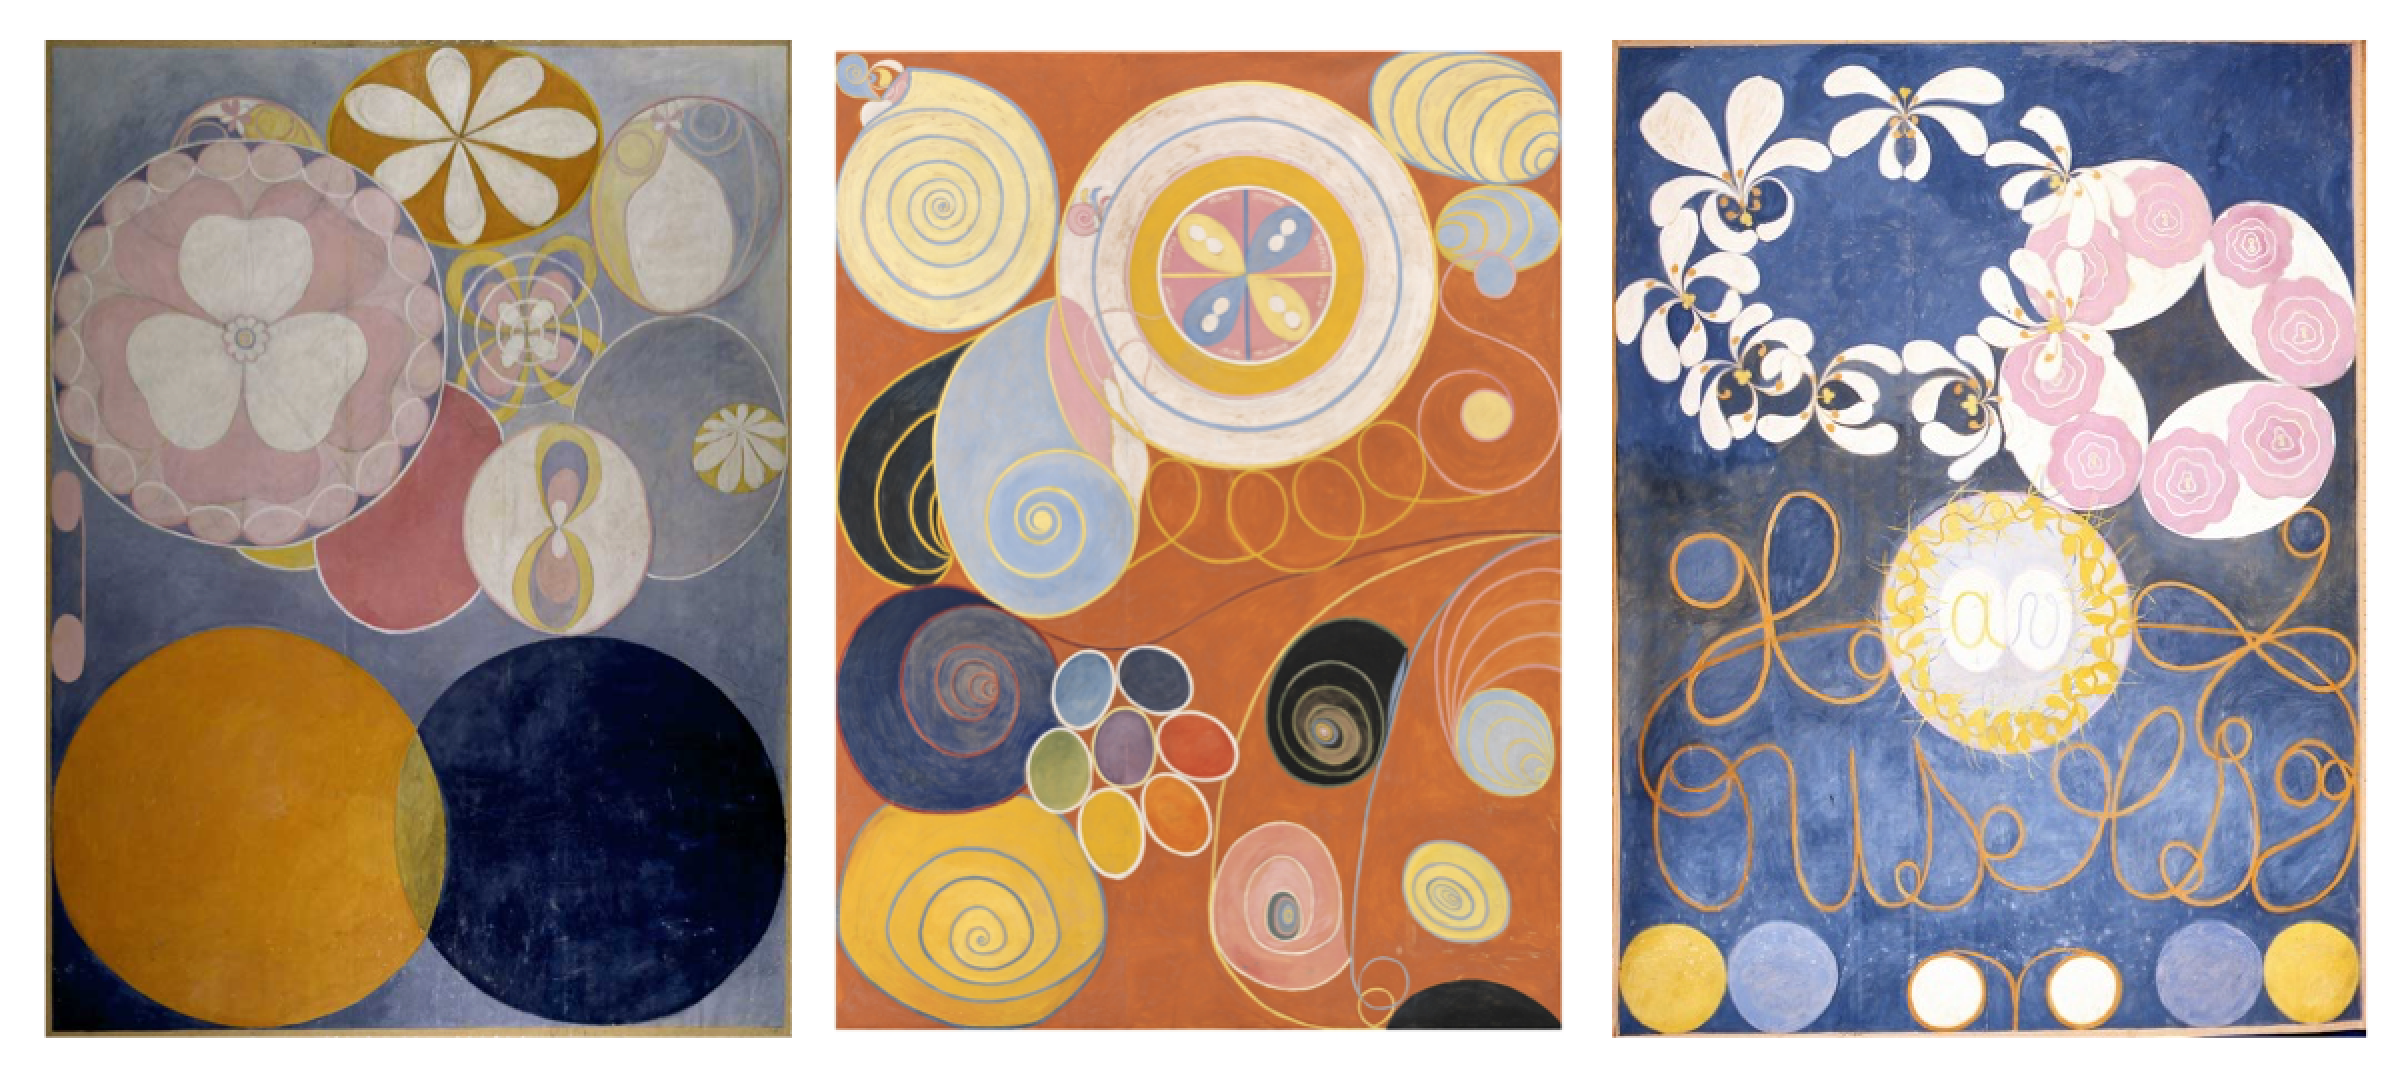 Three paintings from the  De Tio Största (The Ten Largest)  series by Hilma af Klint, 1907